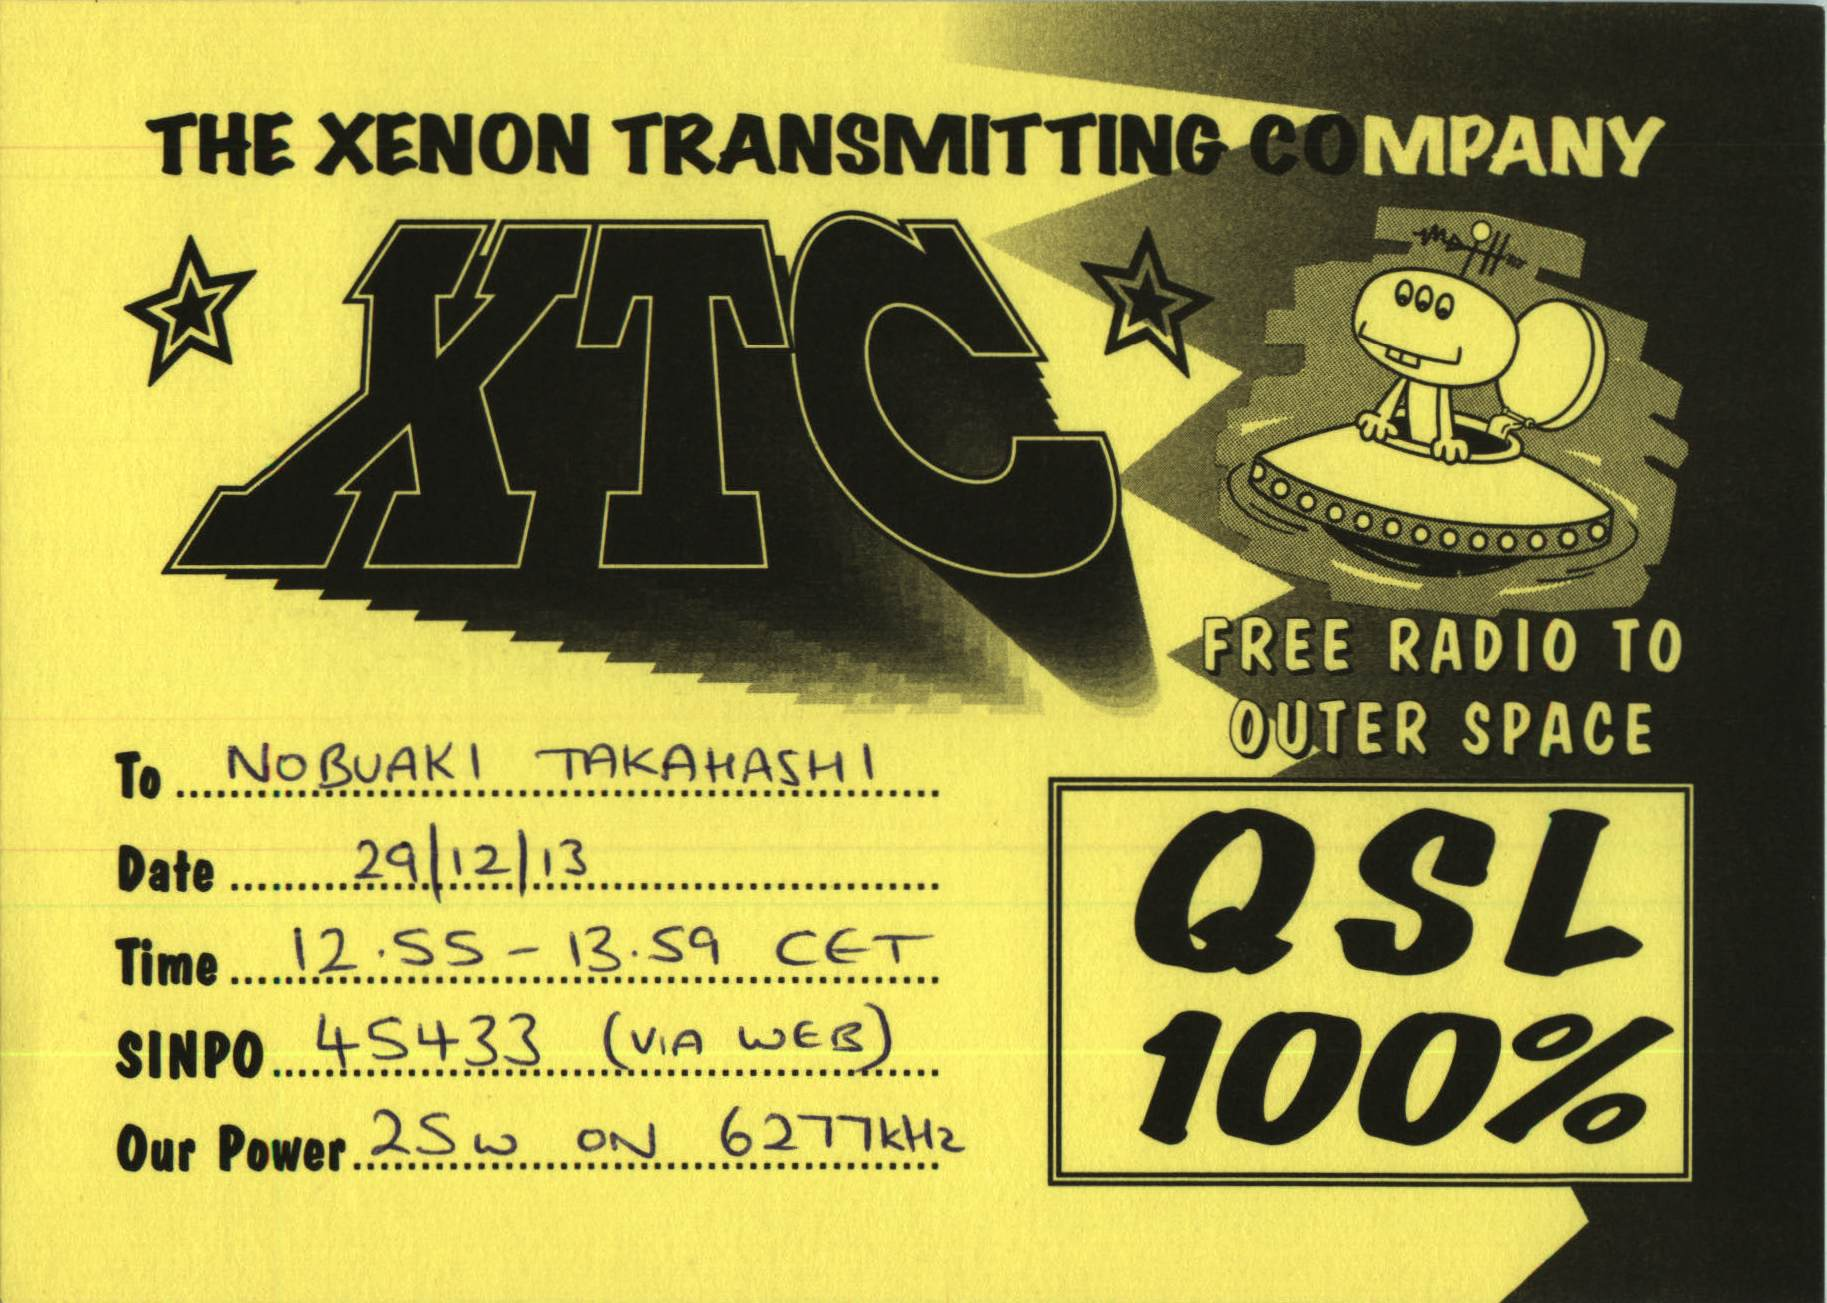 XTC The Xenon Transmitting Company